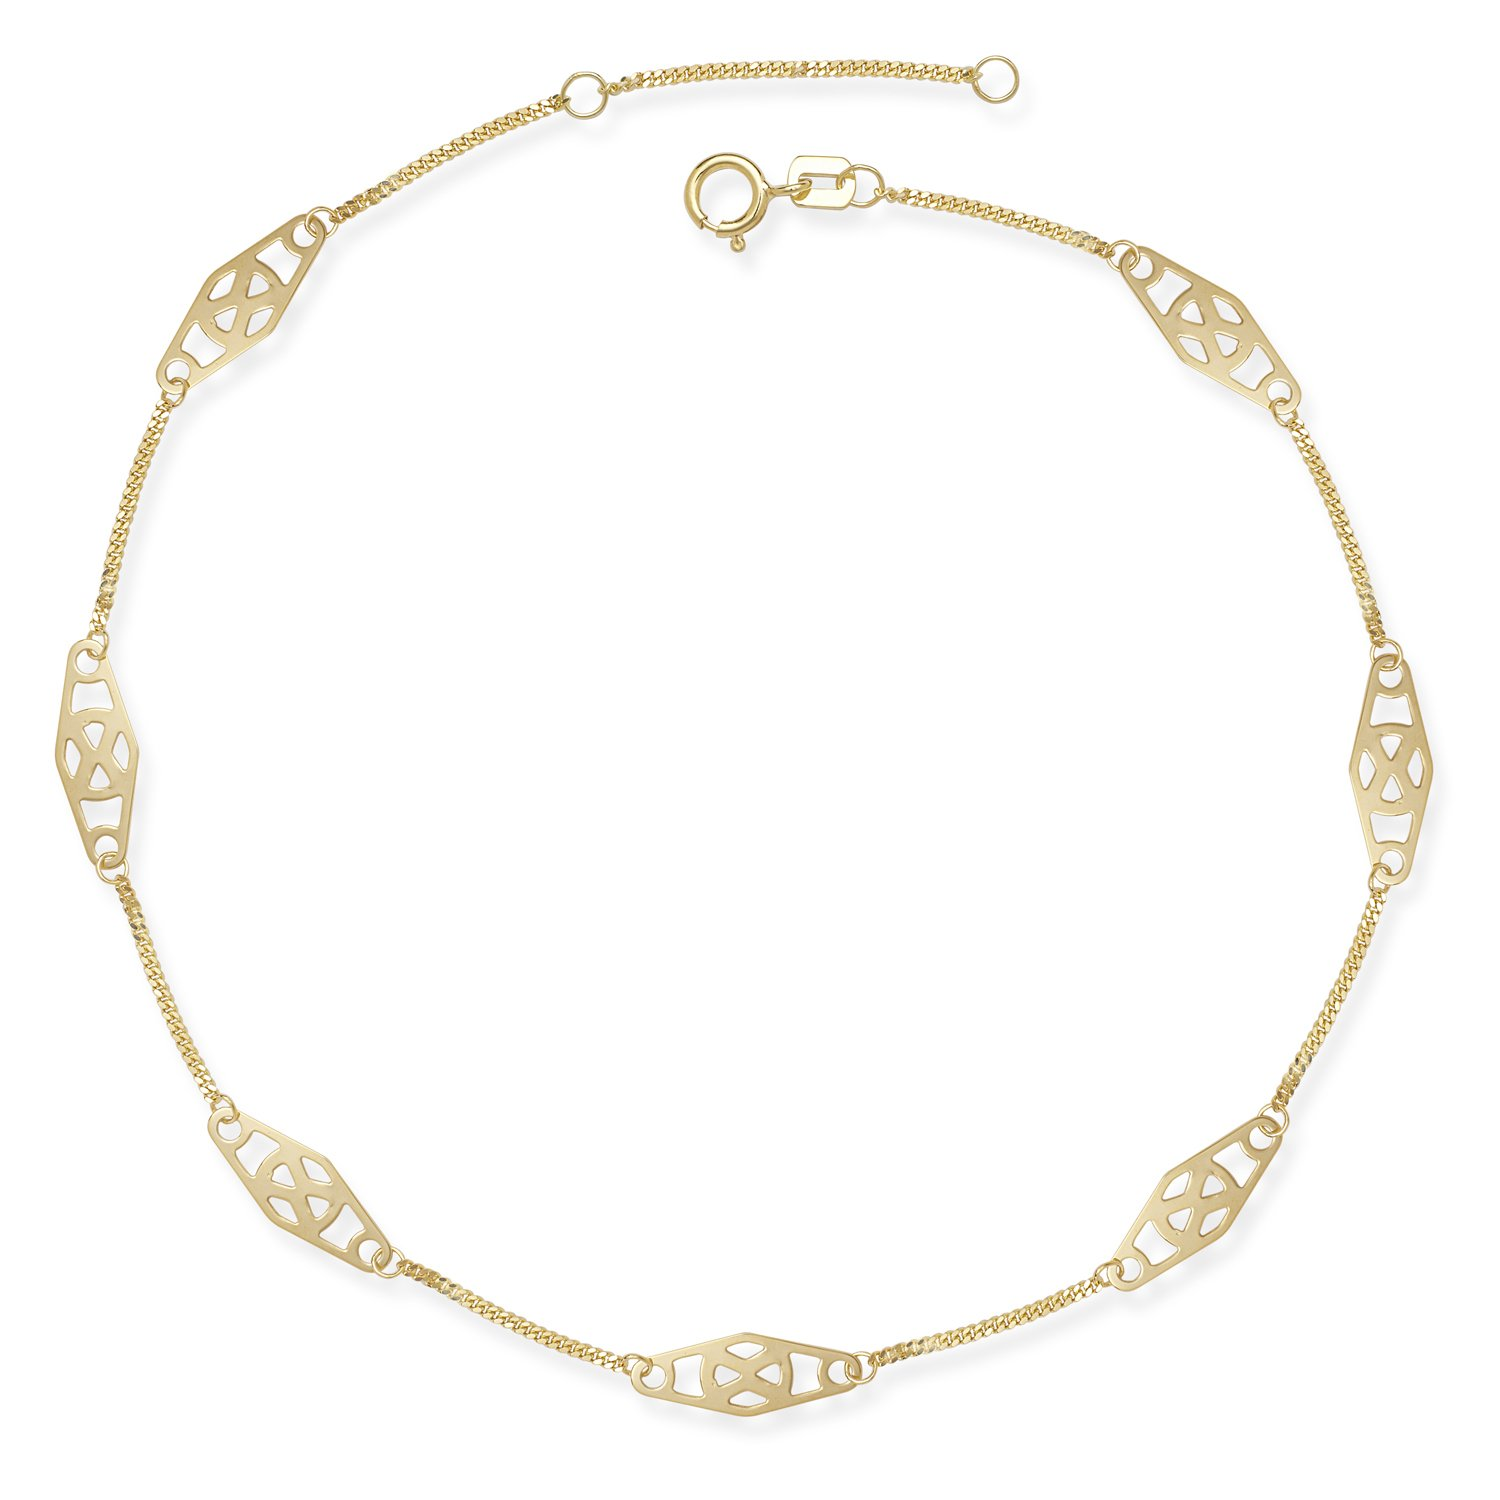 14k Gold 9-10-inch Adjustable Twisted Bar Fancy Station Anklet (yellow or white) (yellow-gold)